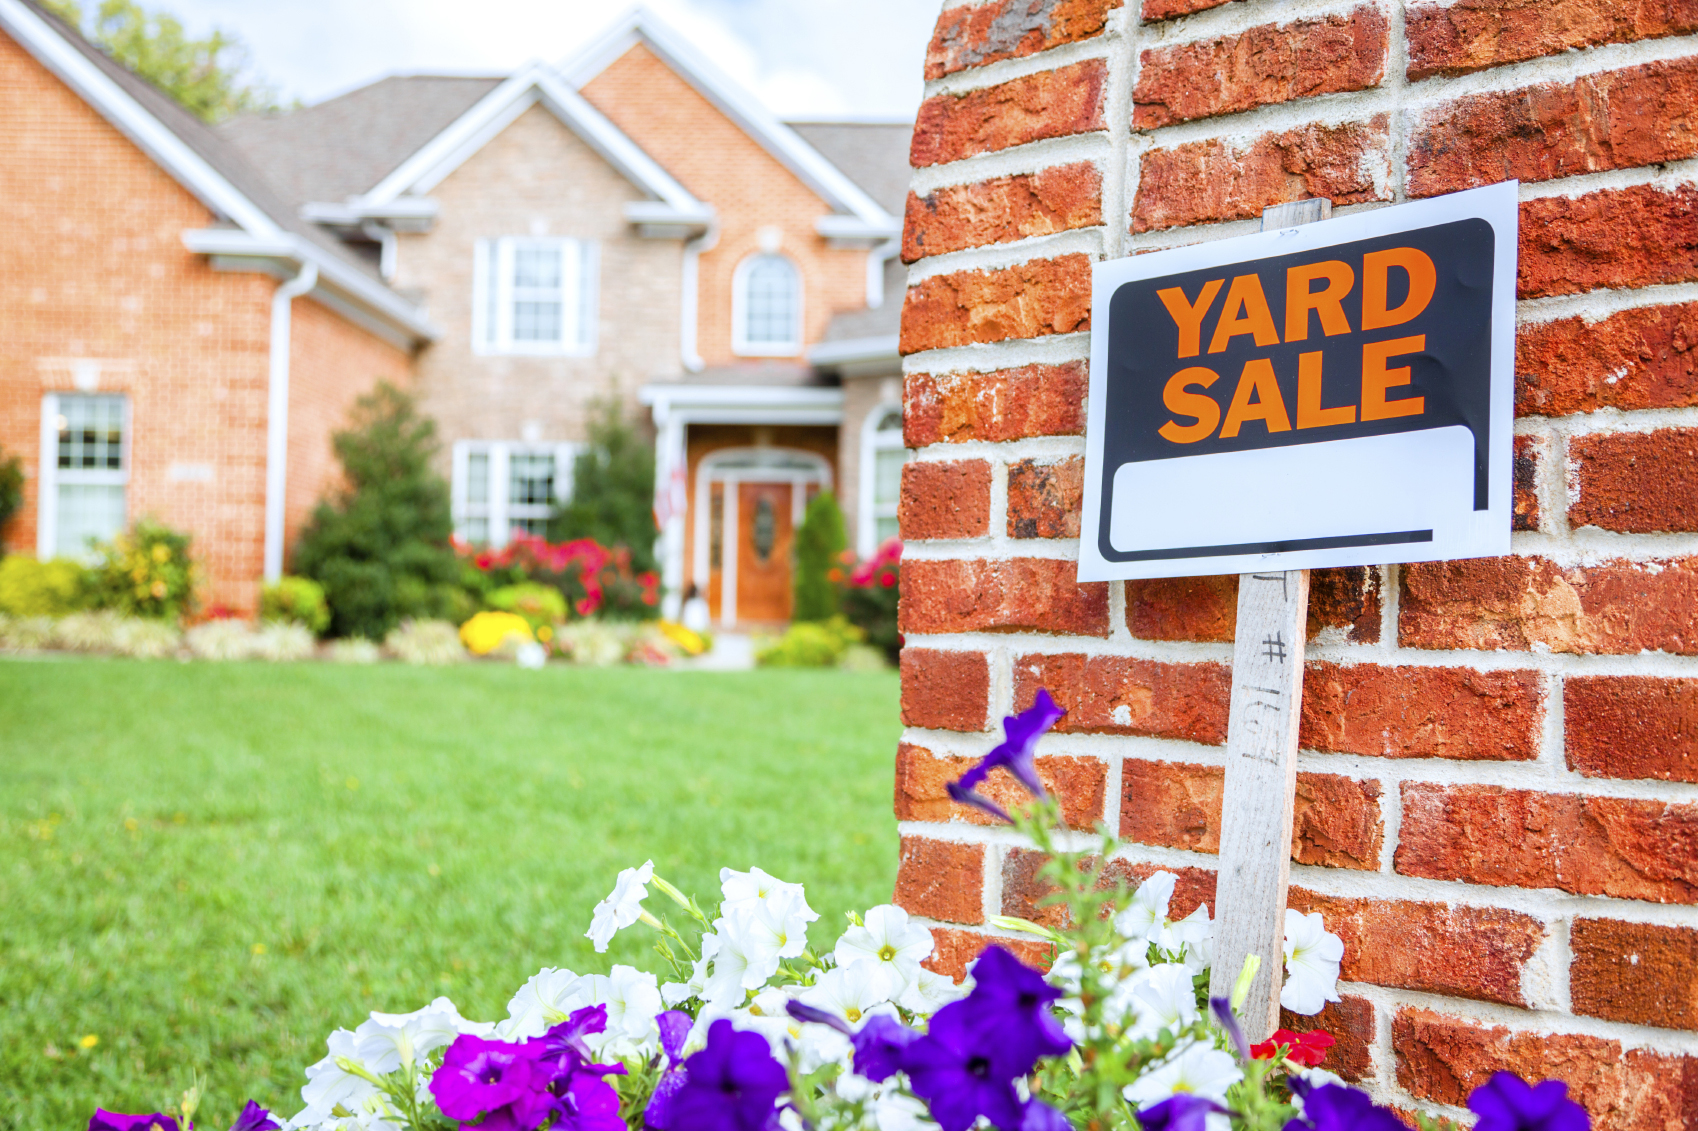 Yard Sales Can Be Fun and Profitable, but Make Sure You Have ...